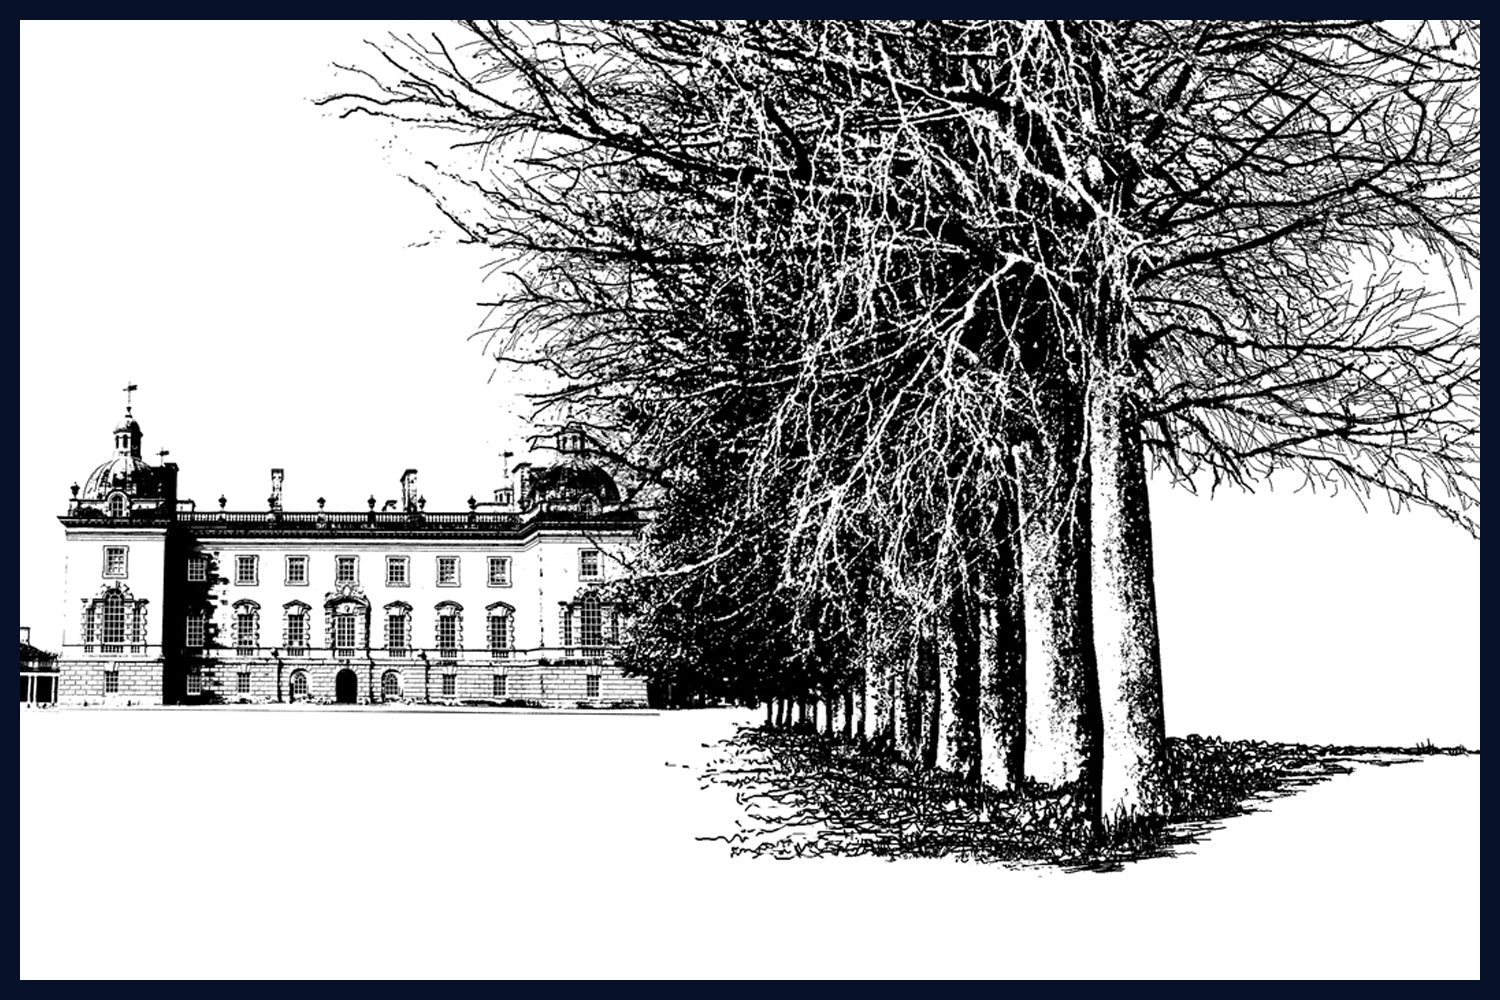 Floated & Framed Houghton Hall: West Perspective, Norfolk no.10 of 50 Limited Edition Fine Art Print